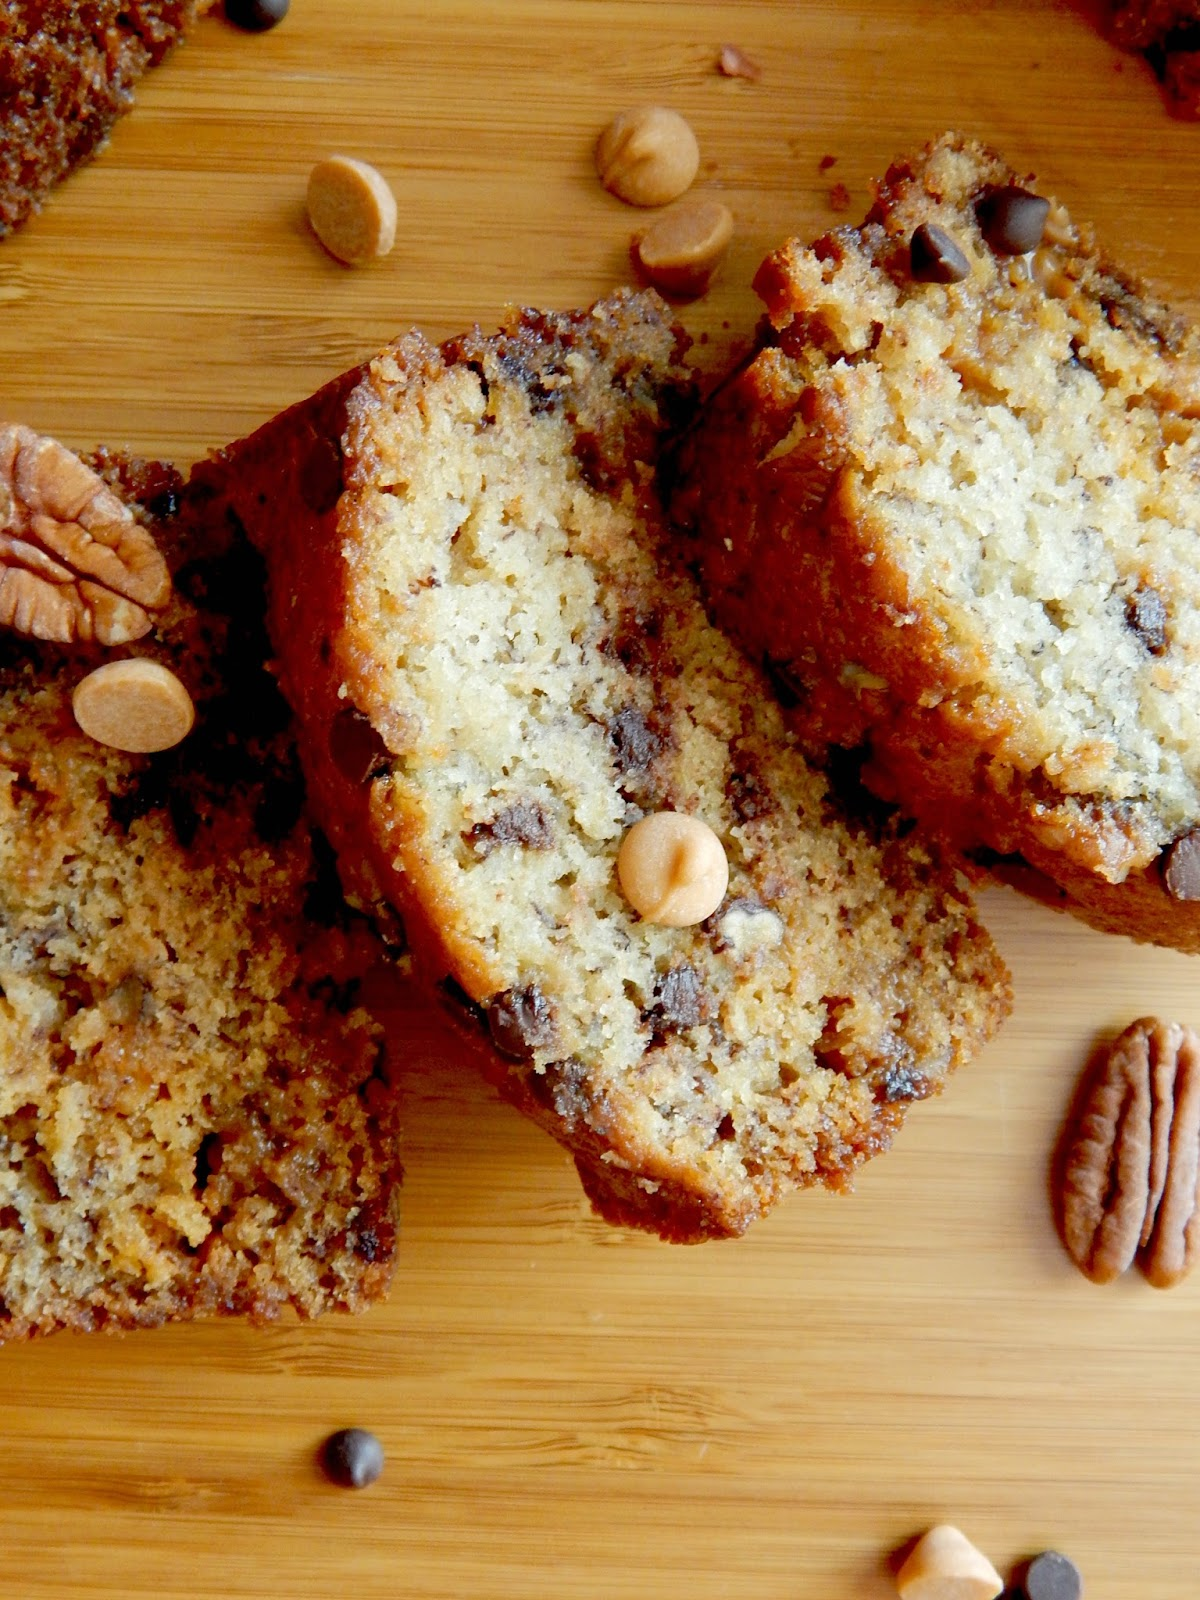 Allys sweet and savory eats junk in the trunk banana bread my food blogging journey i stumbled upon a banana bread recipe and tweaked it my own since that defining moment ive made it a hundred times and have forumfinder Choice Image